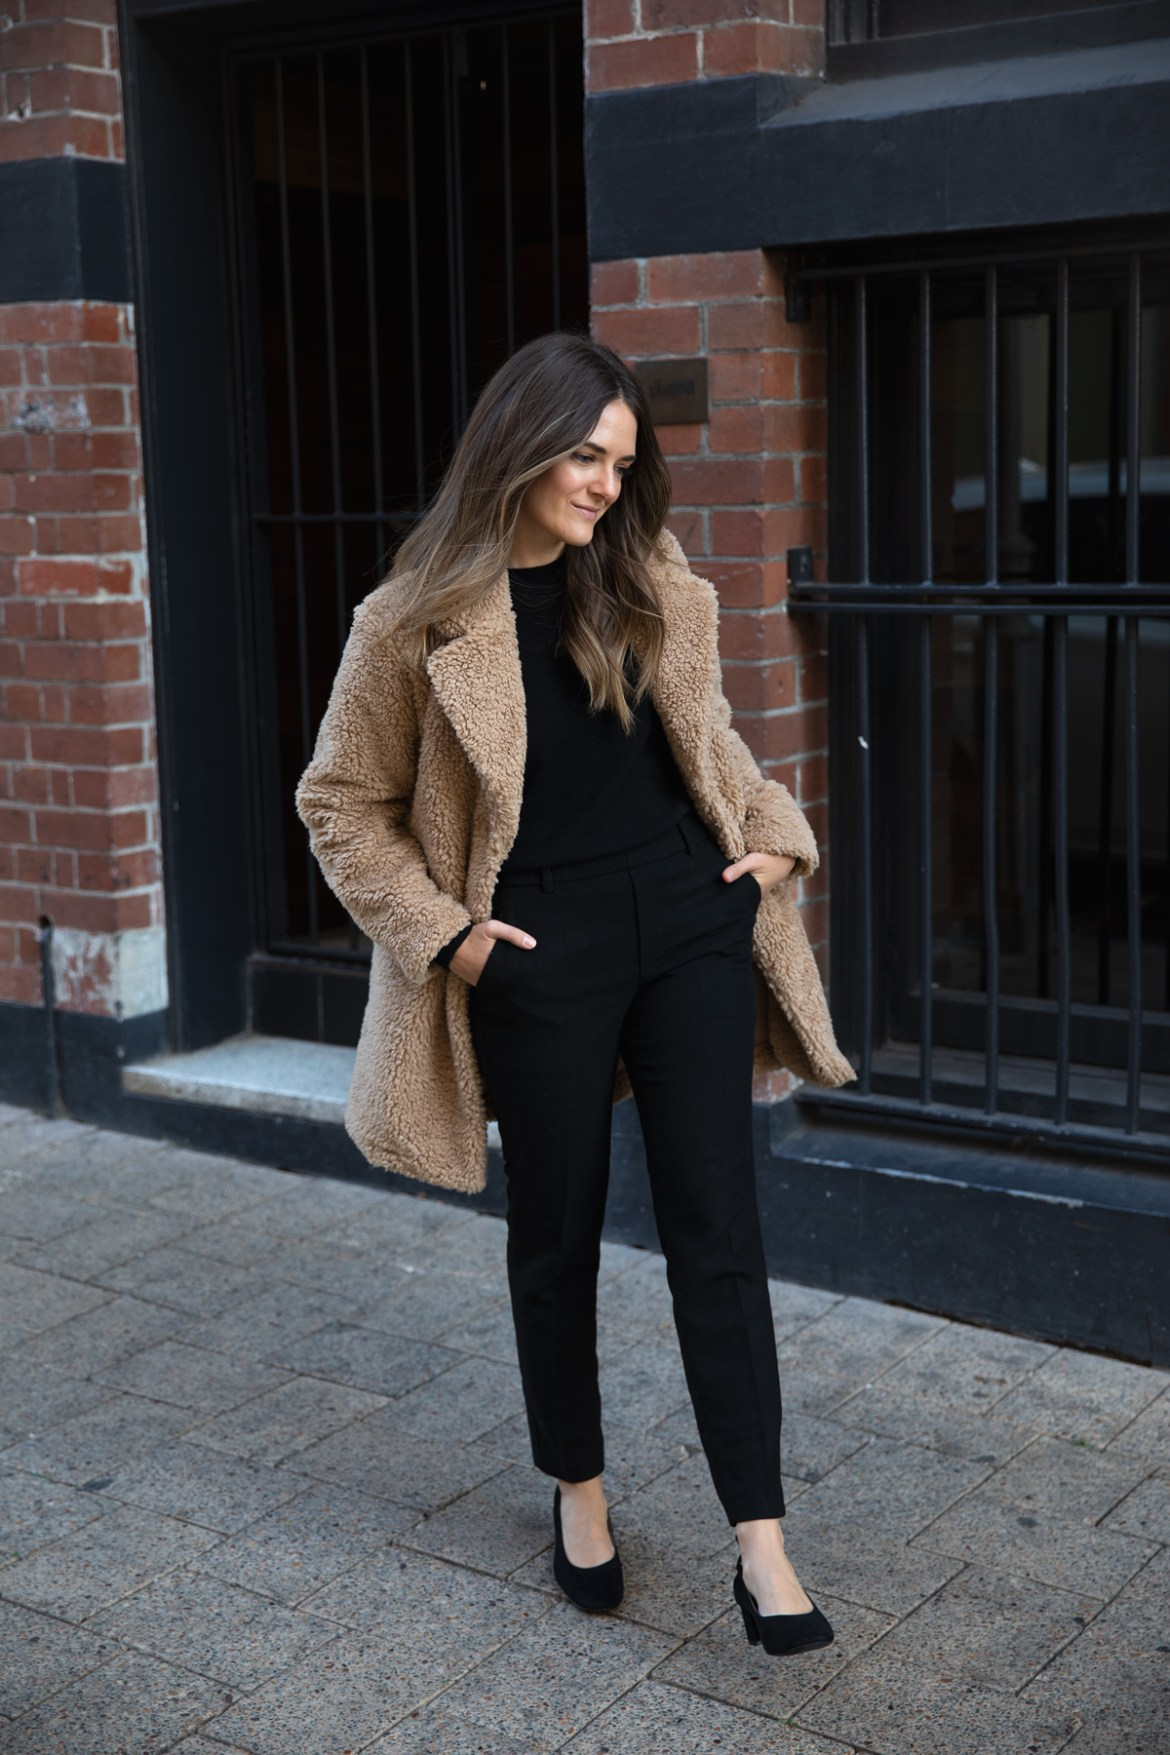 beige fleece teddy coat from Uniqlo with wool pants for Autumn Winter outfit ideas worn by Inspiring Wit fashion blogger Jenelle